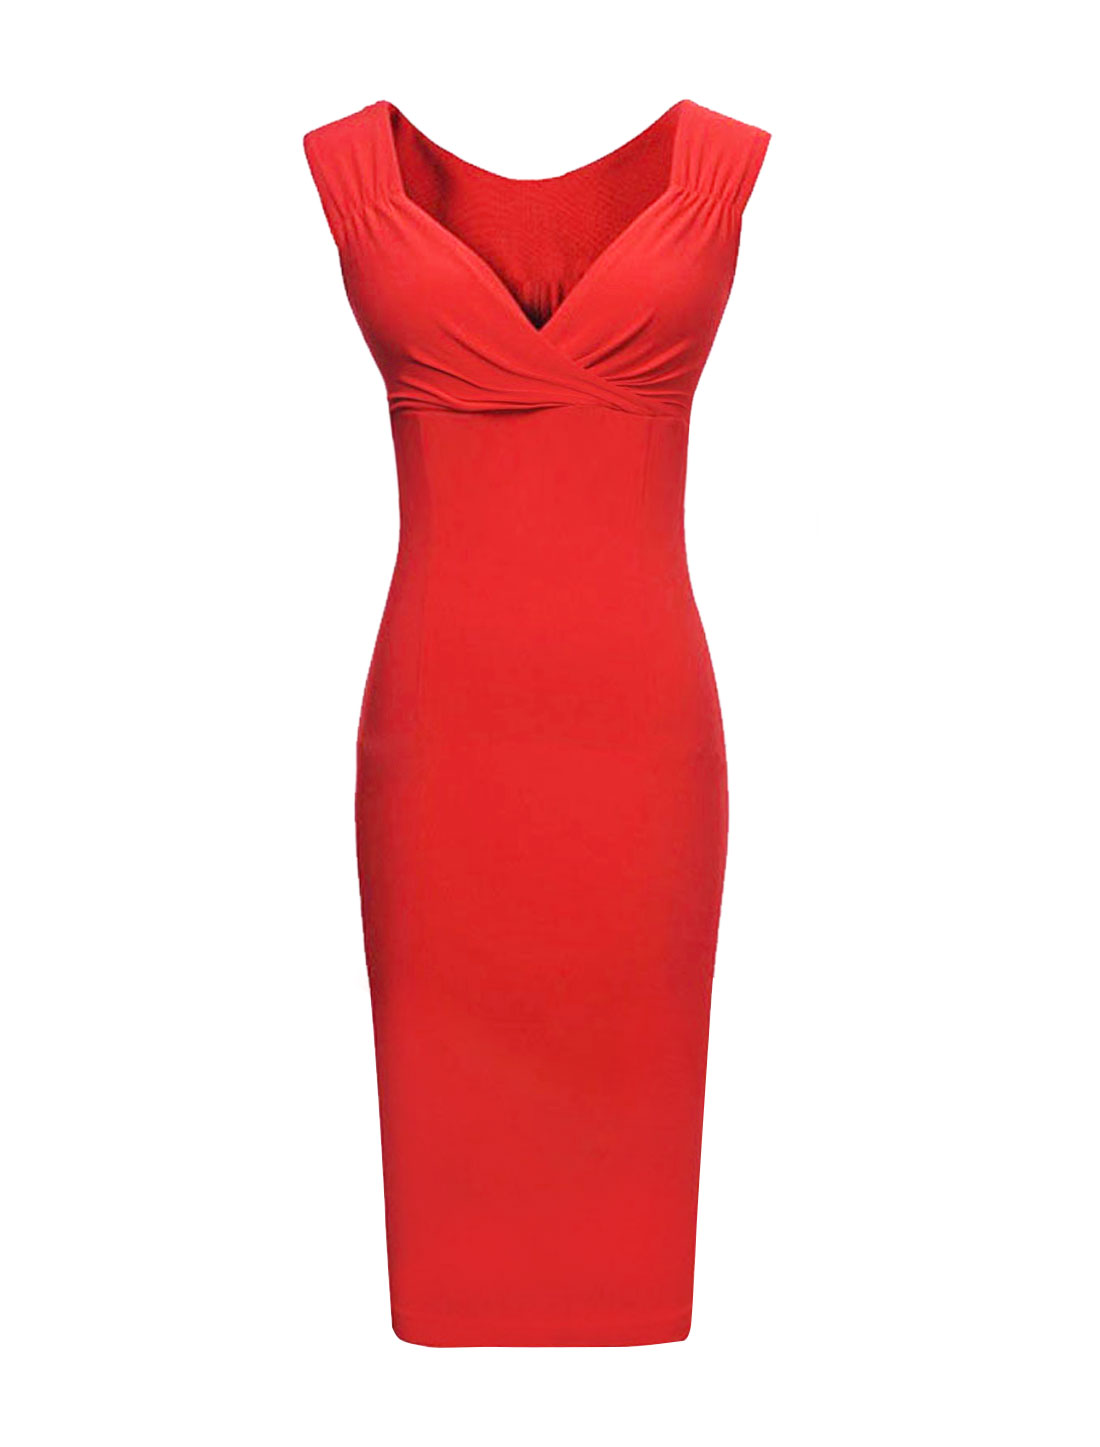 Women Crossover V Neck Ruched Sleeveless Pencil Dress Red XL